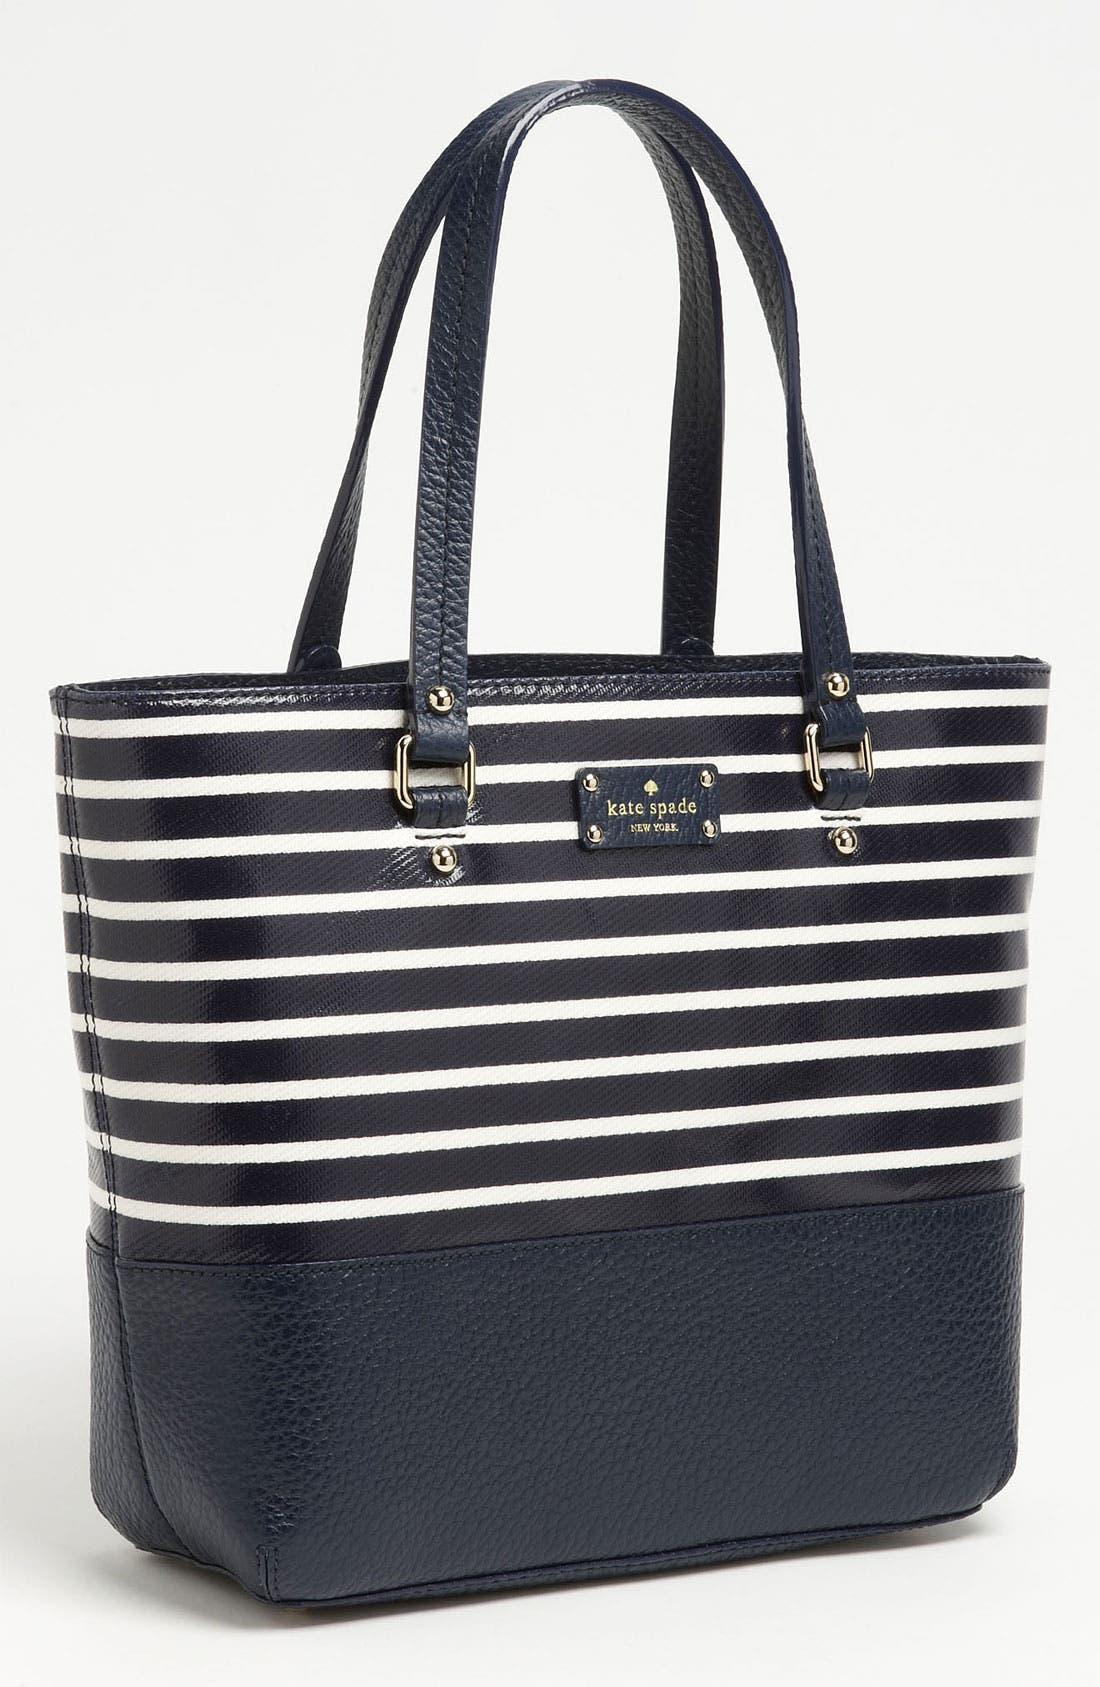 Main Image - kate spade new york 'grove court - abuela' tote